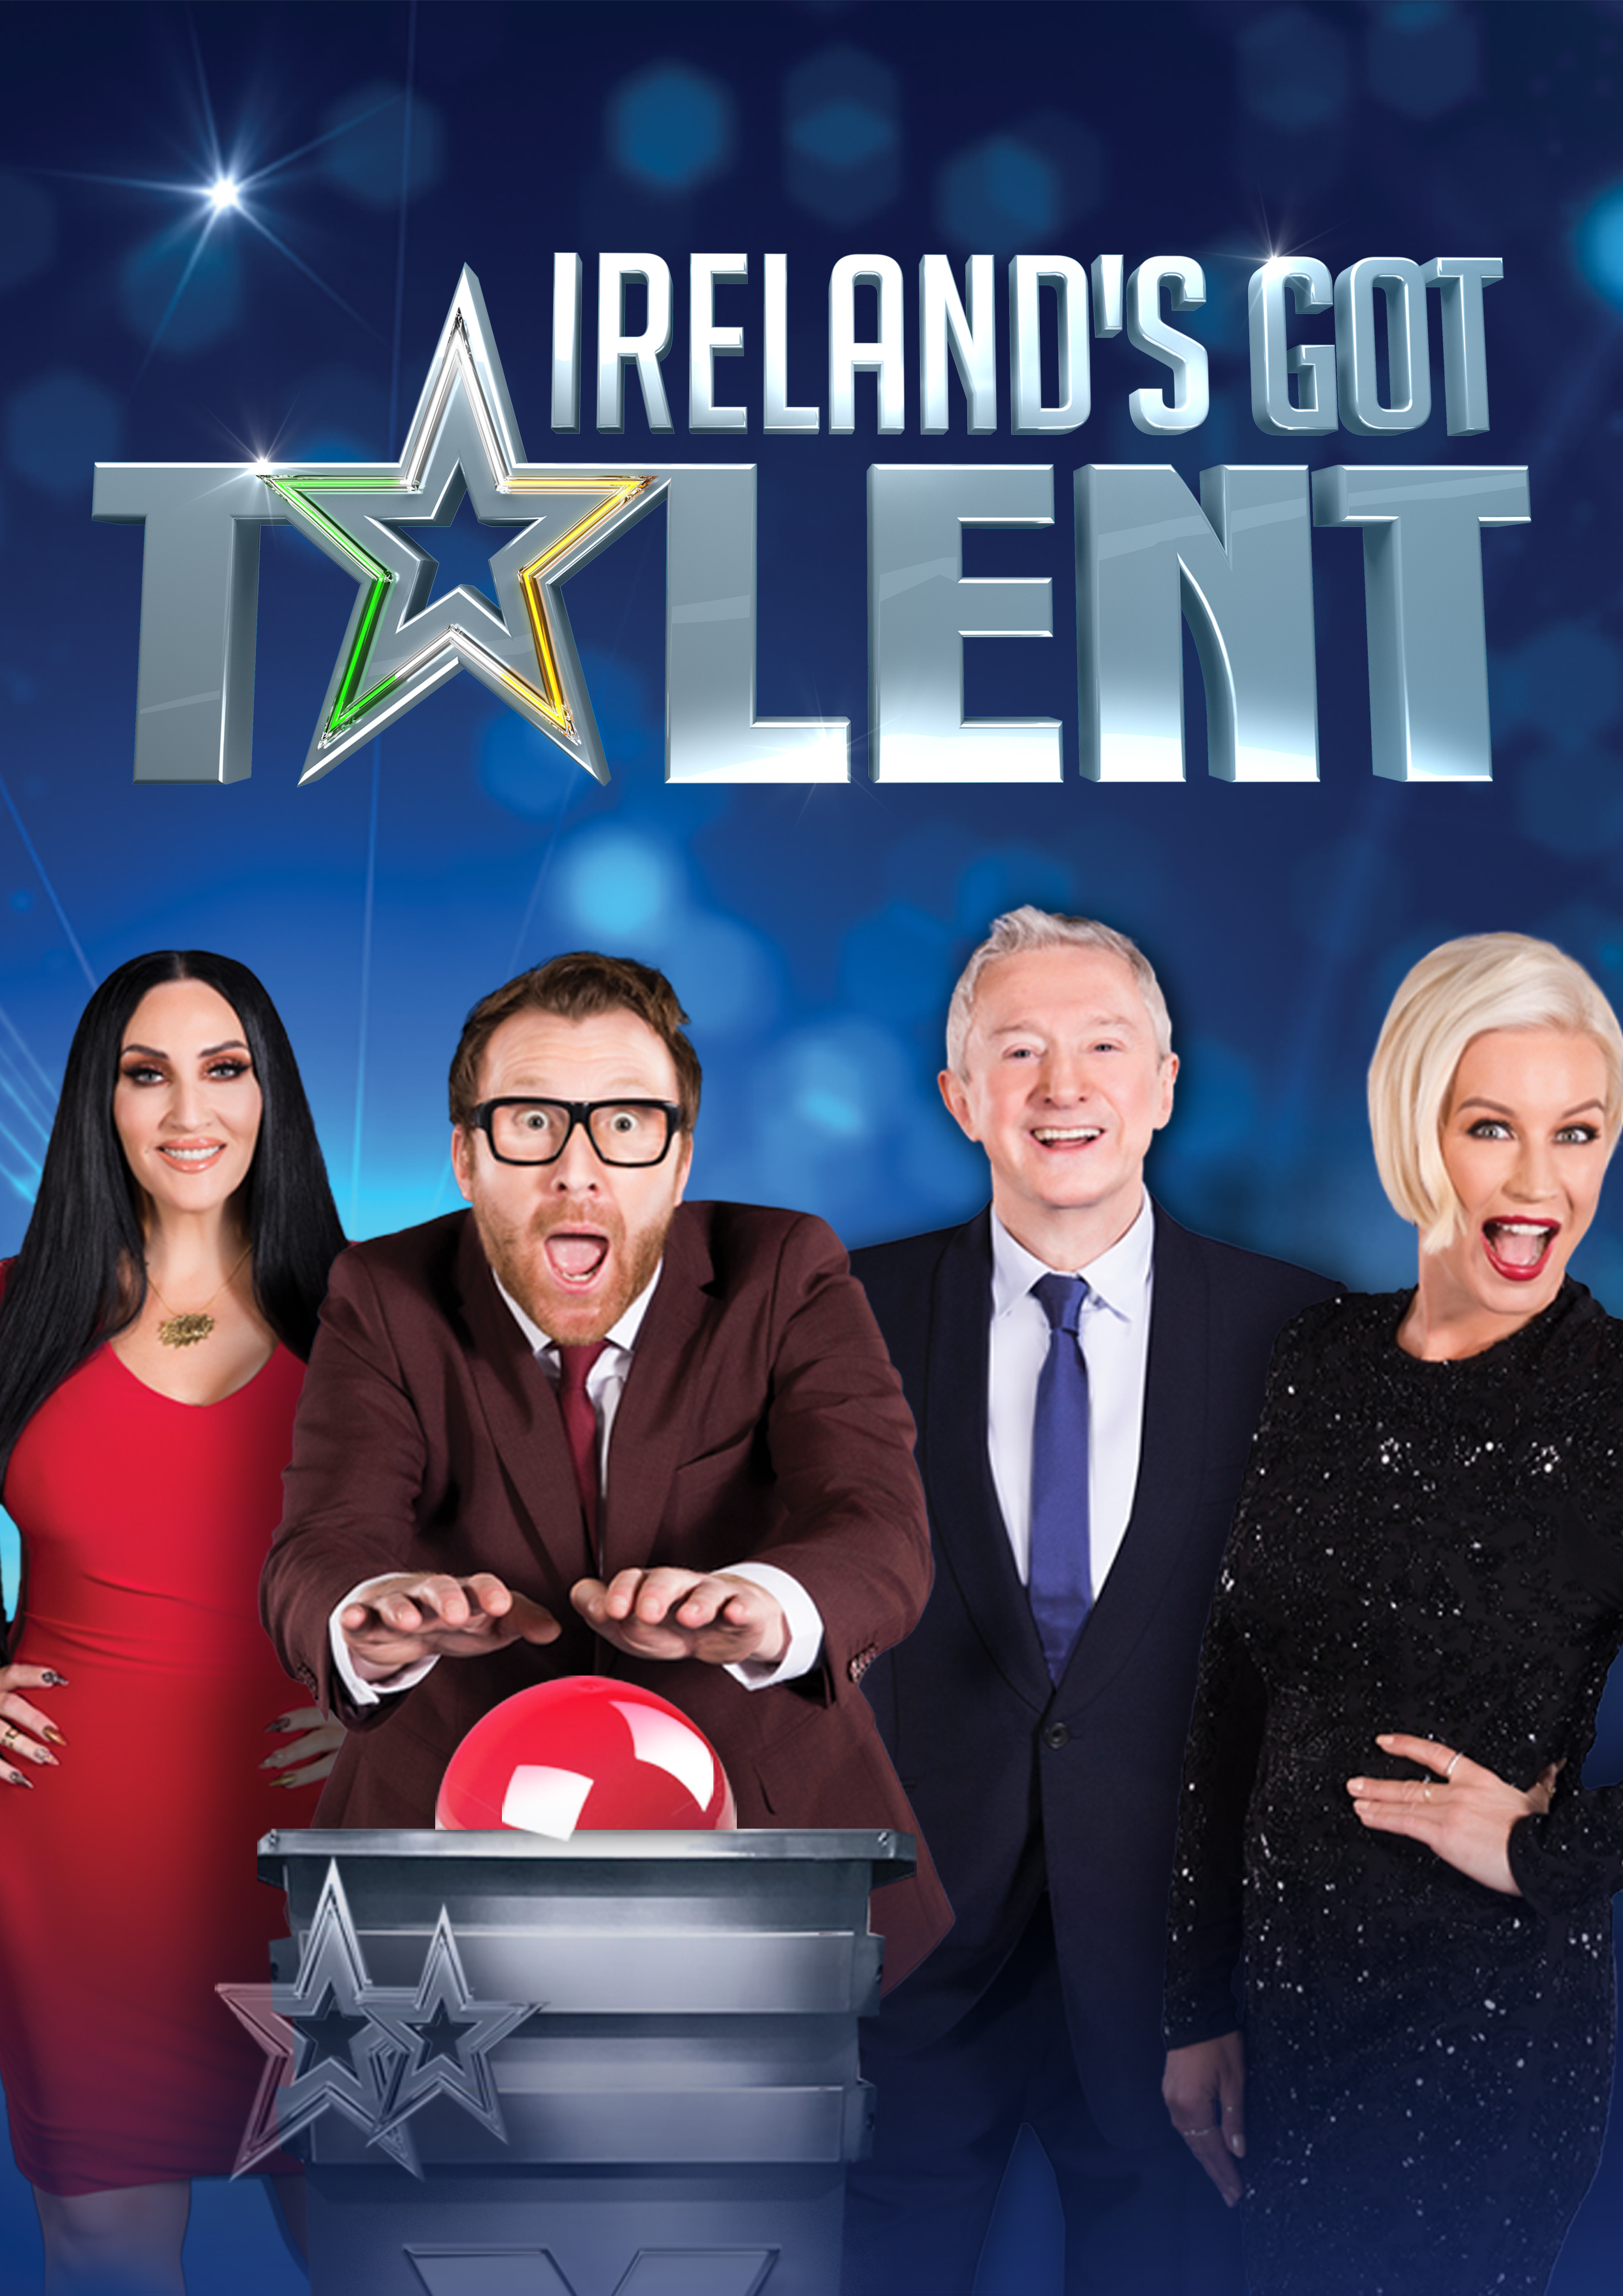 Irelands.Got.Talent.S02E03.PDTV.x264-PLUTONiUM